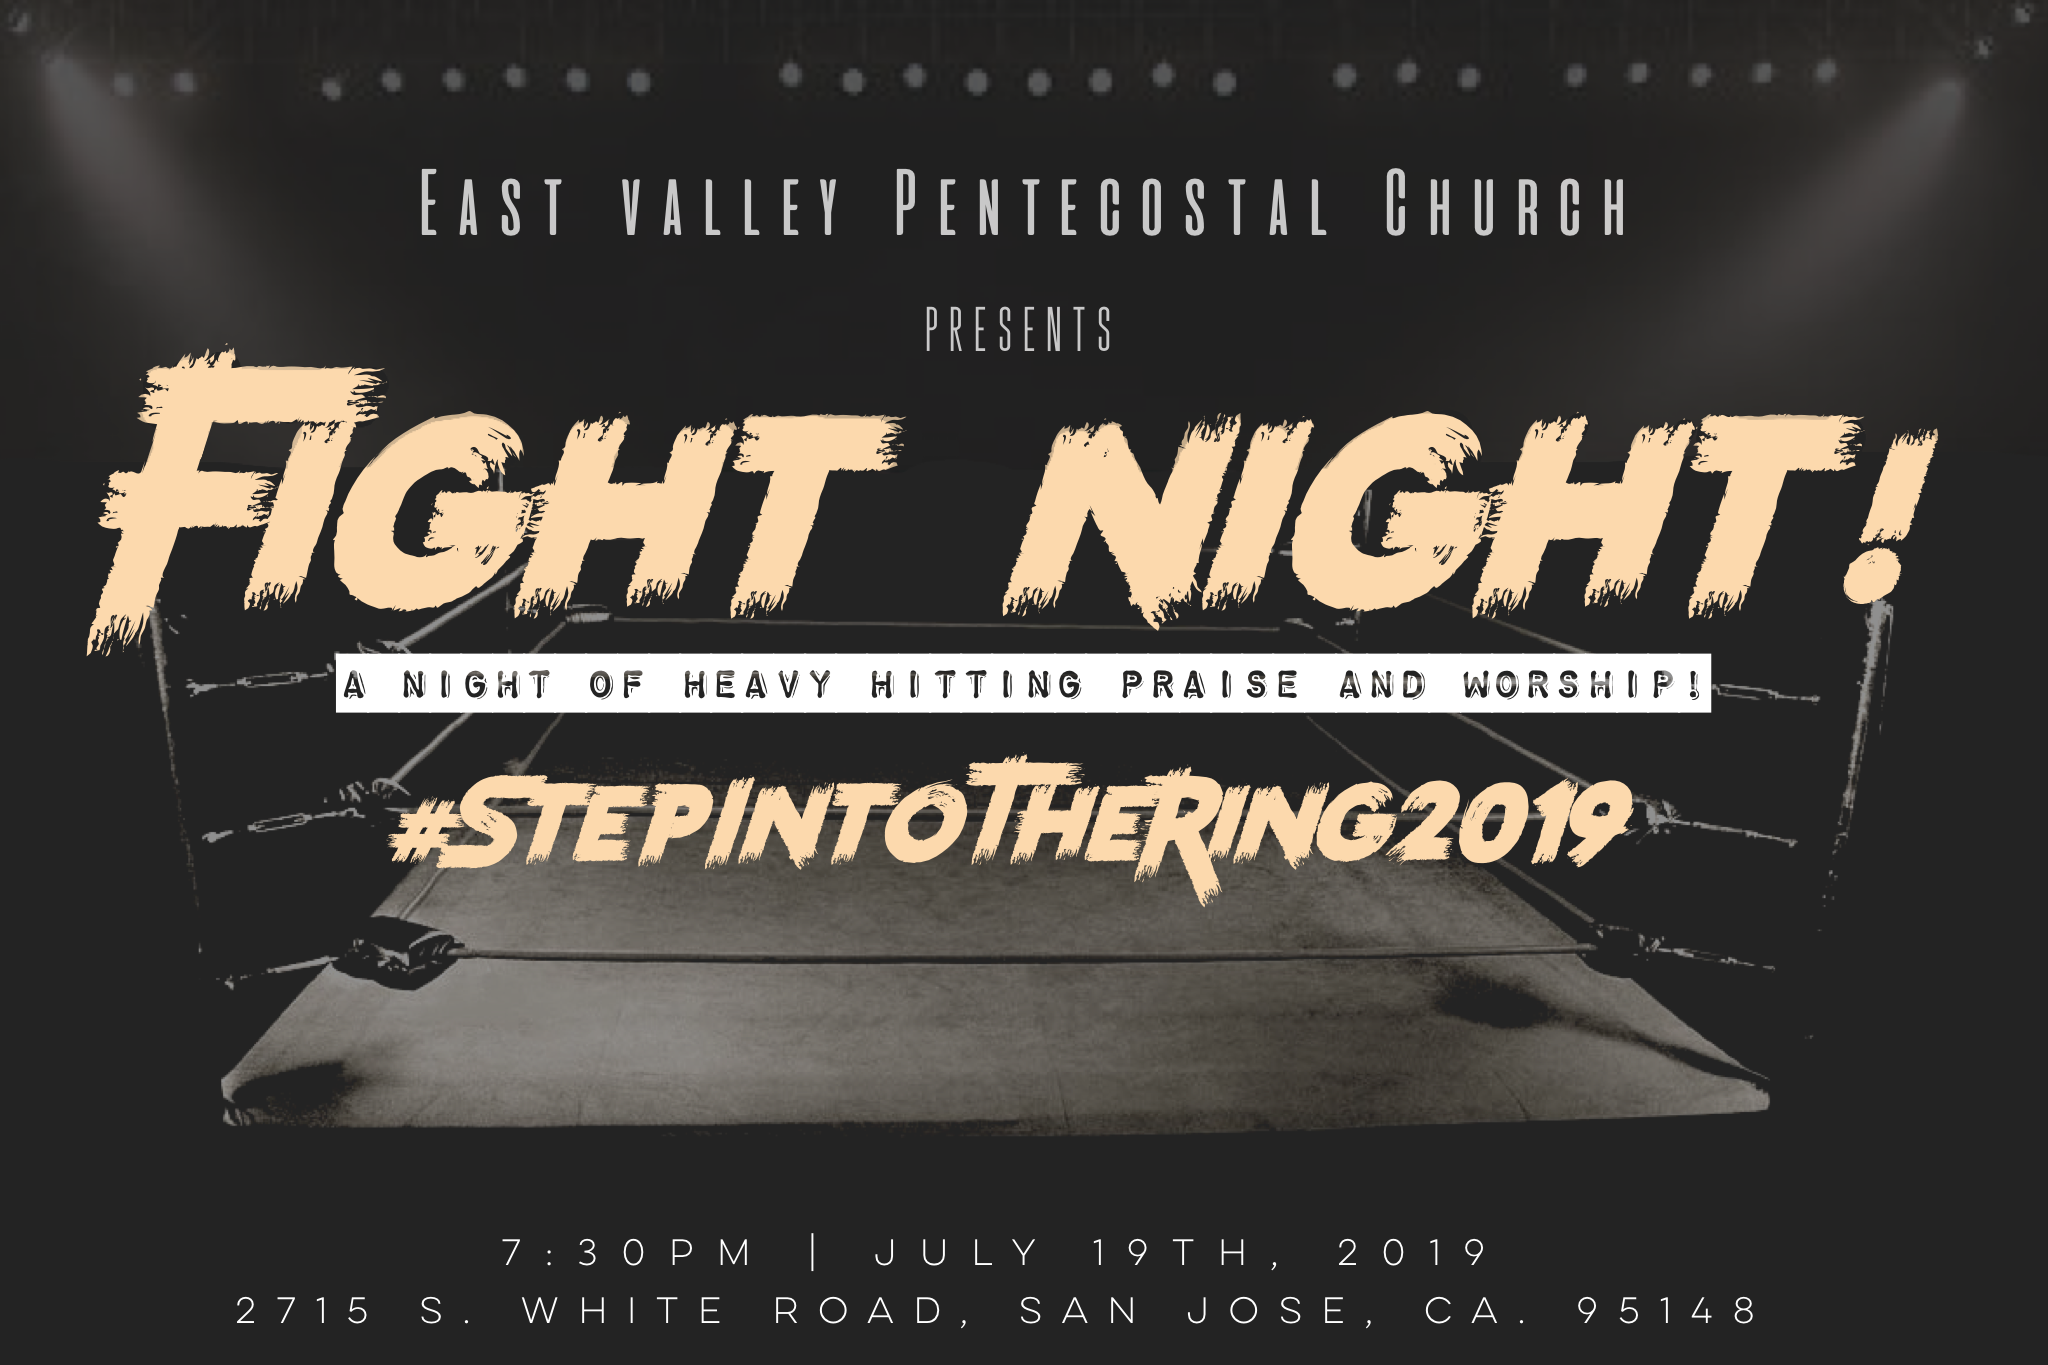 """Step into the ring - Be apart of a life changing event in San Jose, Ca. that has drawn together the likeness of recording artists and passionate individuals who are sick and tired of simply being sick and tired! We are putting together a one night event to encourage everyone involved and those in attendance to Step Into The Ring and FIGHT for the Kingdom of God, for this generation, for righteousness, and for those struggling to continue their walk with God!""""Wherefore take unto you the whole armour of God, that ye may be able to withstand in the evil day, and having done all, to stand."""" - Ephesians 6:13"""